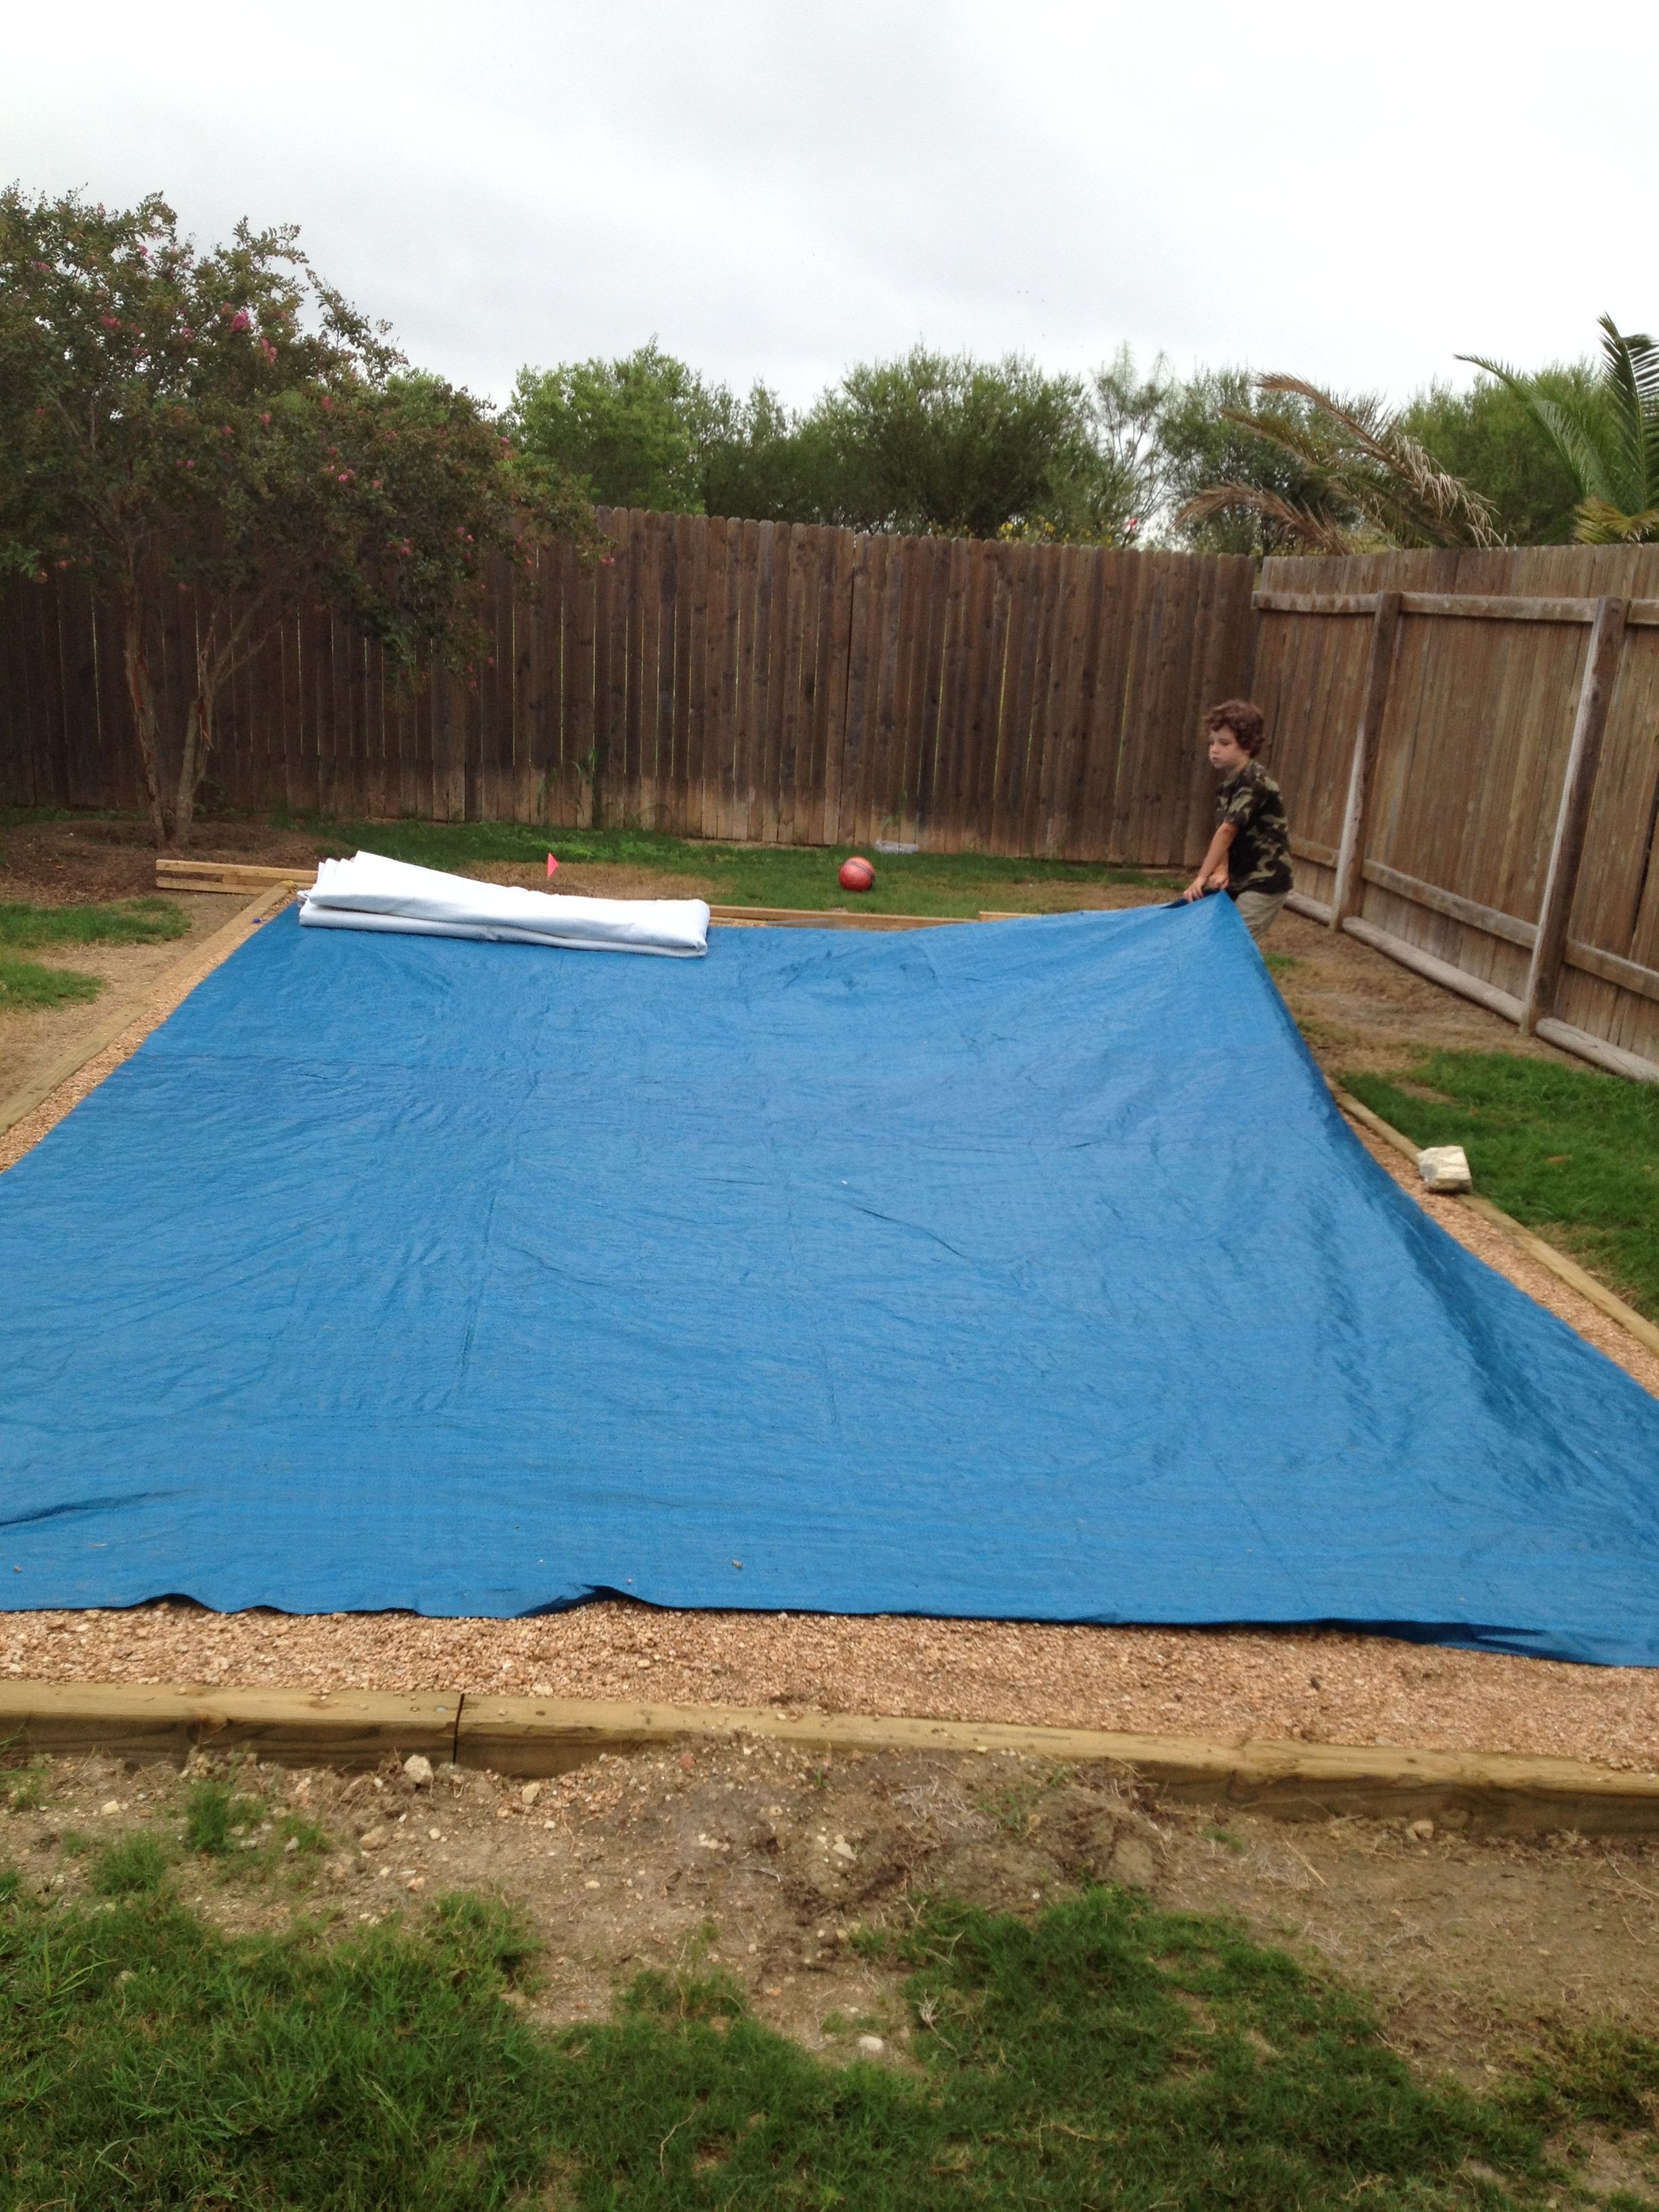 Level The Ground By Framing 4x4 And Put 5 Yards Of Dg In The Frame Worked Well After Pool Install Pool Installation Rectangle Pool Intex Above Ground Pools